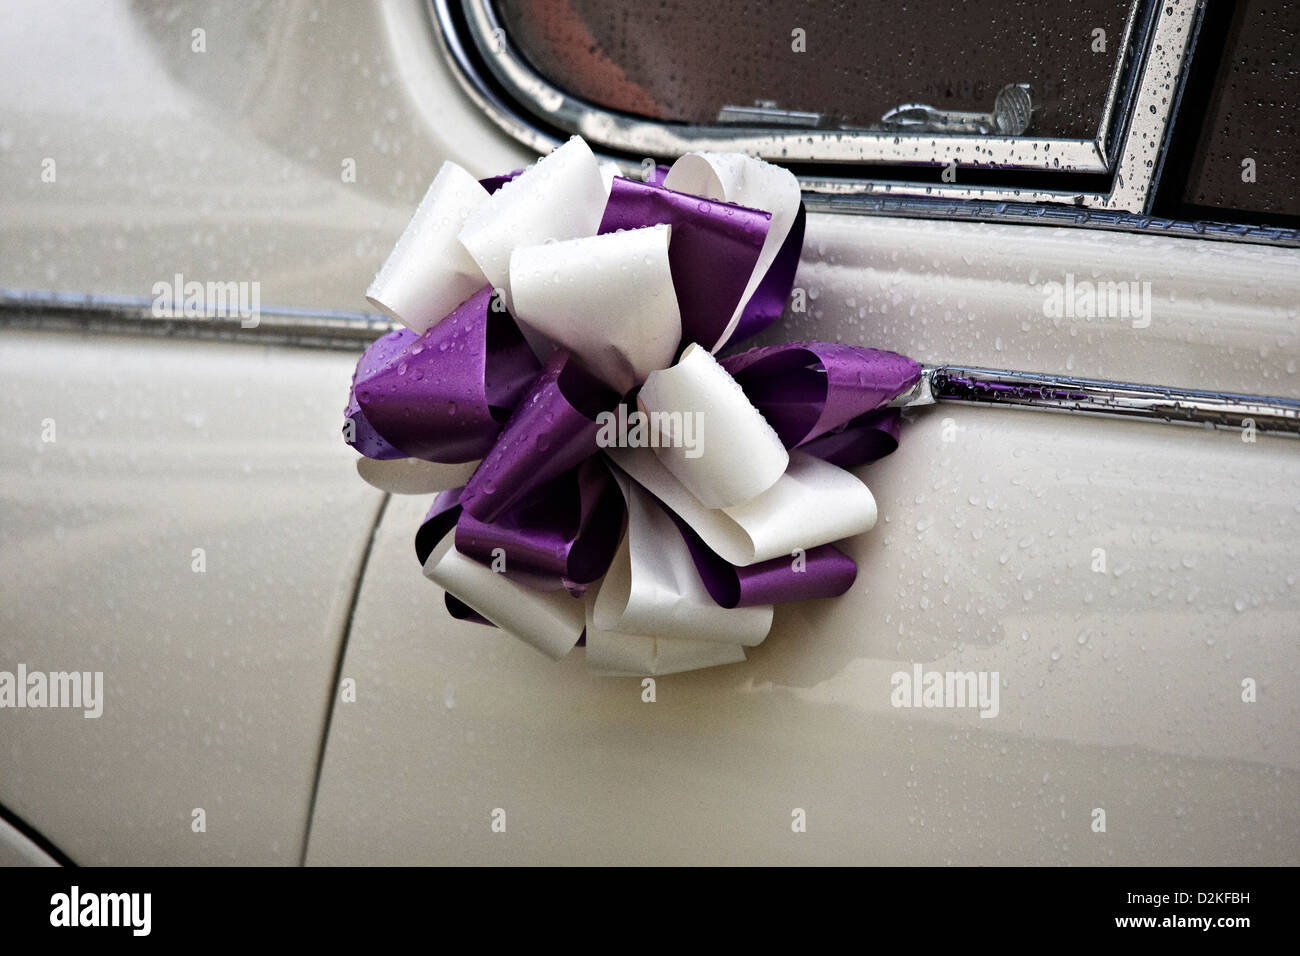 Purple and white ribbon wedding bow attached to white wedding car - Stock Image